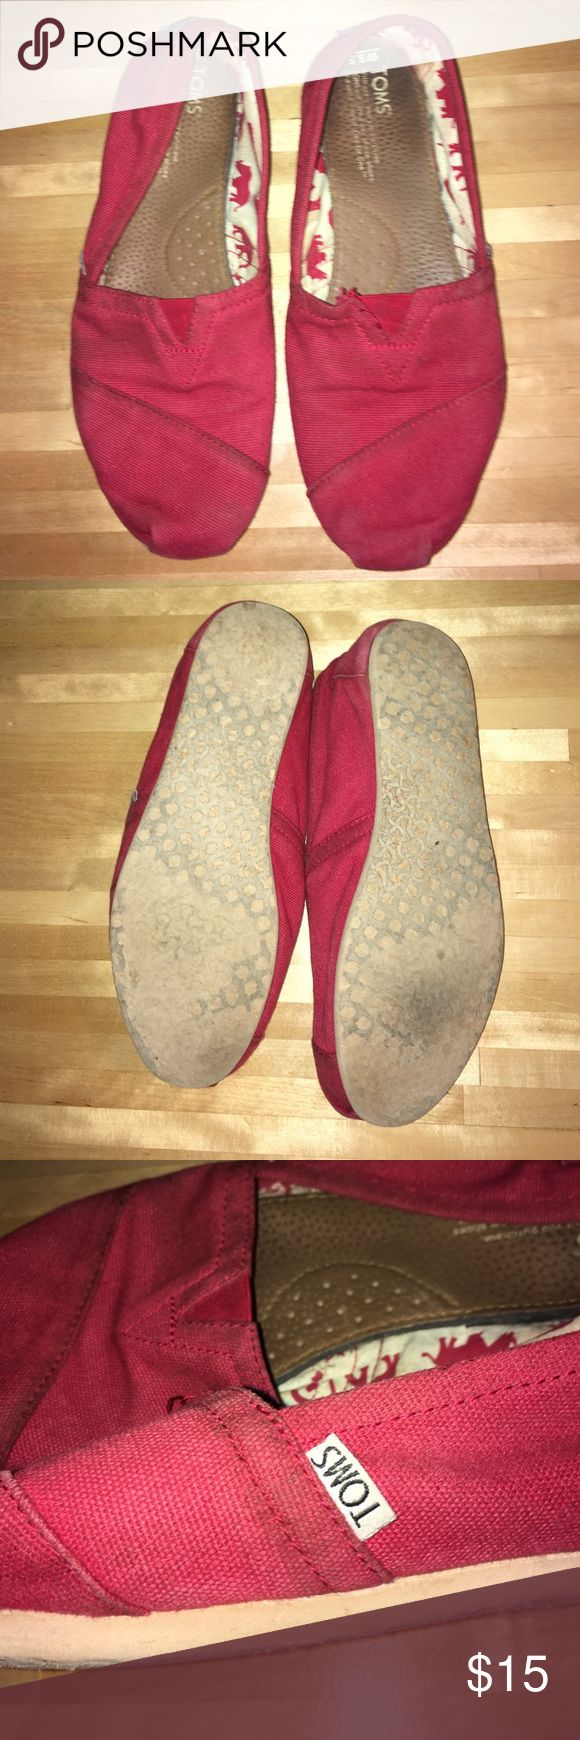 red toms Size 8.5 - alittle dirty- washing should get most of it out - still in nice condition TOMS Shoes